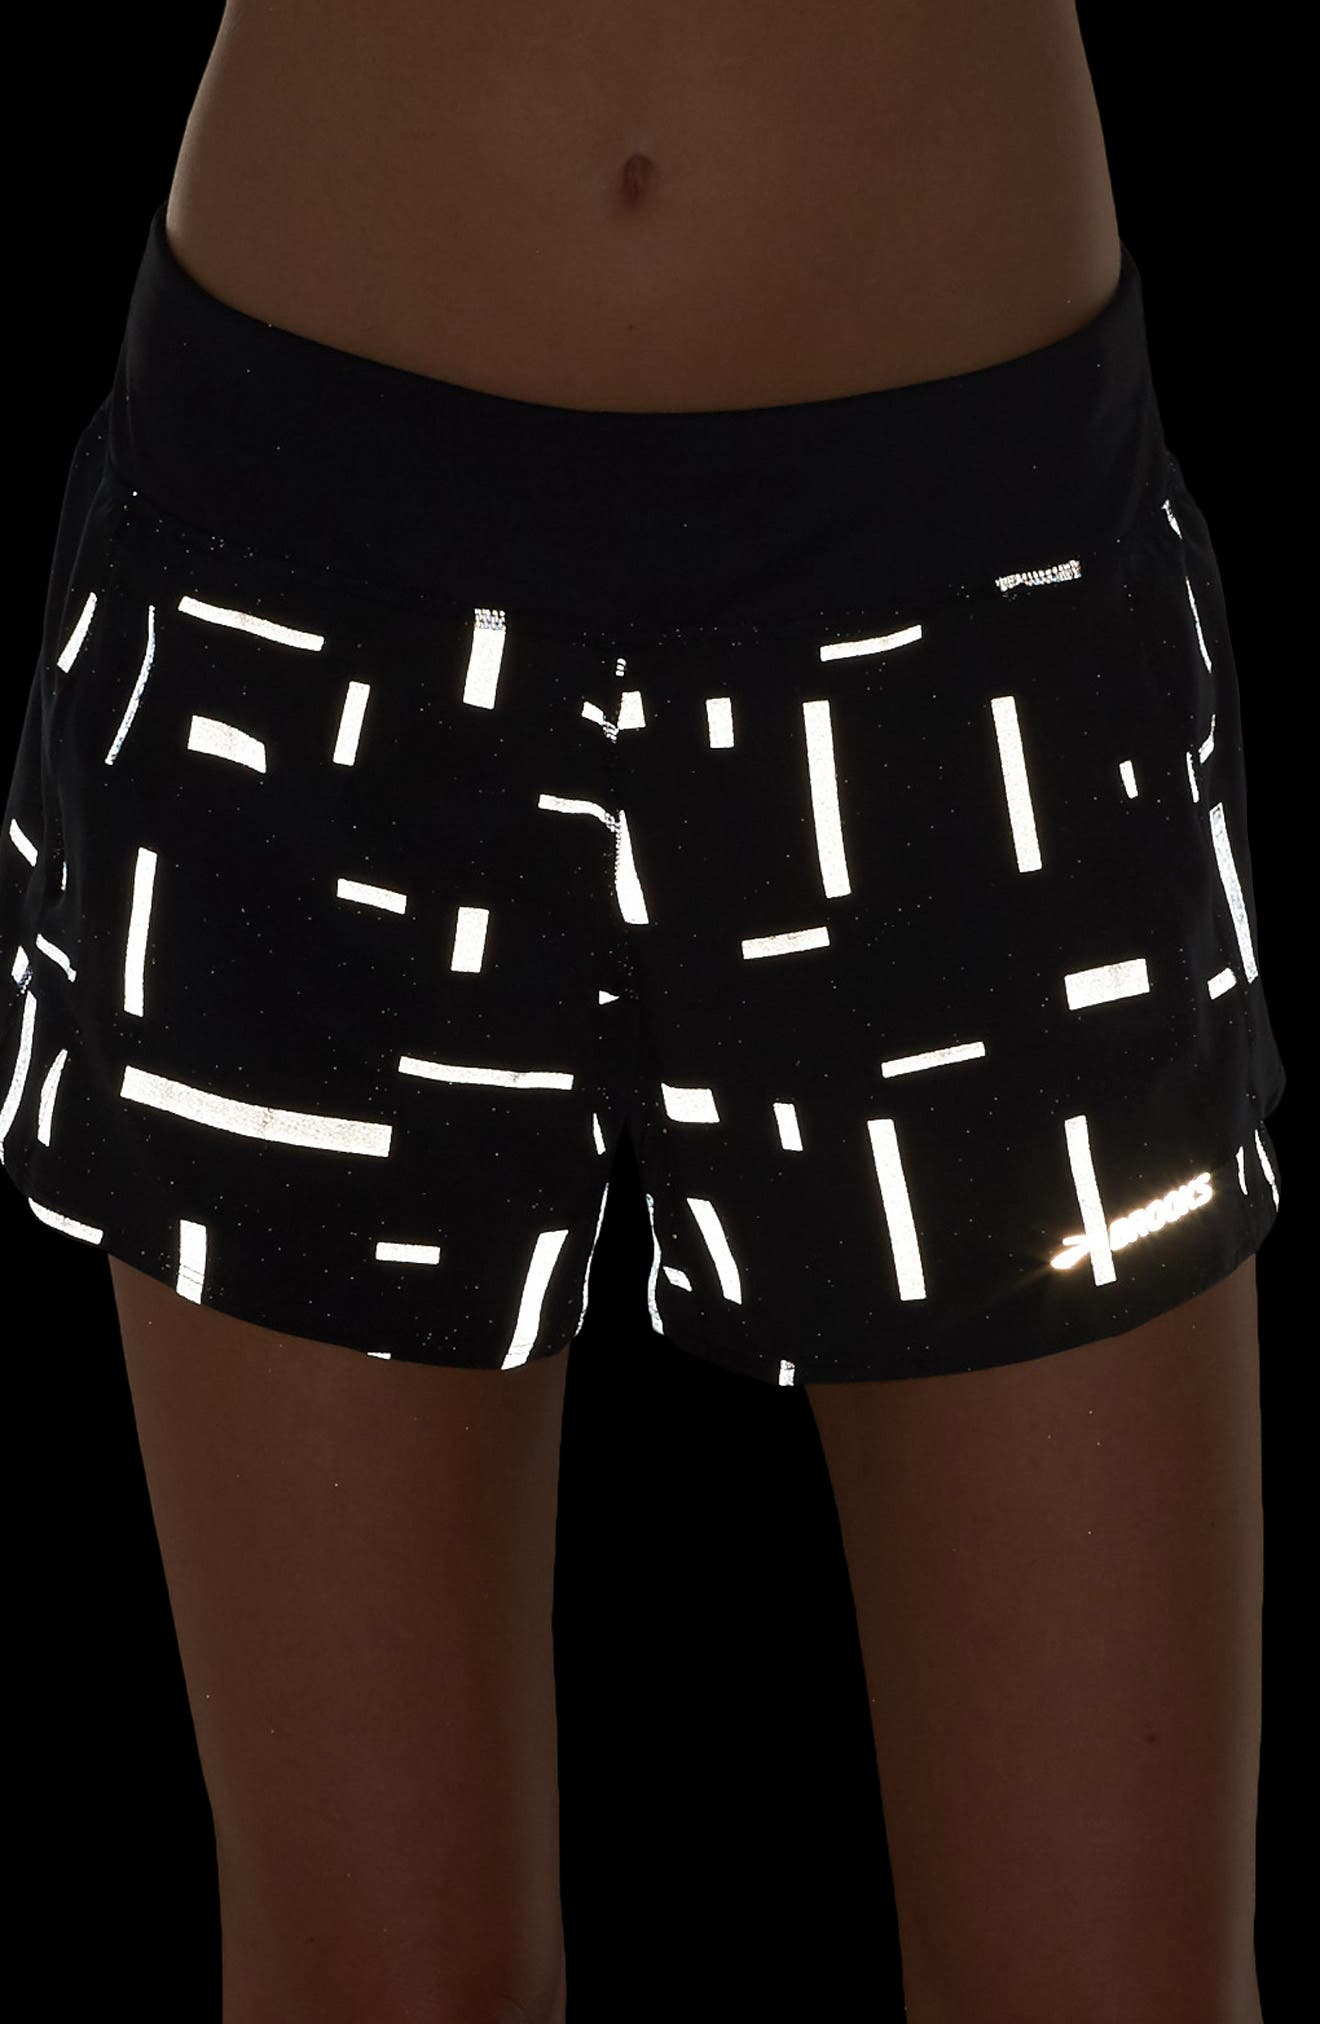 Chaser Running Shorts,                             Alternate thumbnail 4, color,                             Comet Reflective